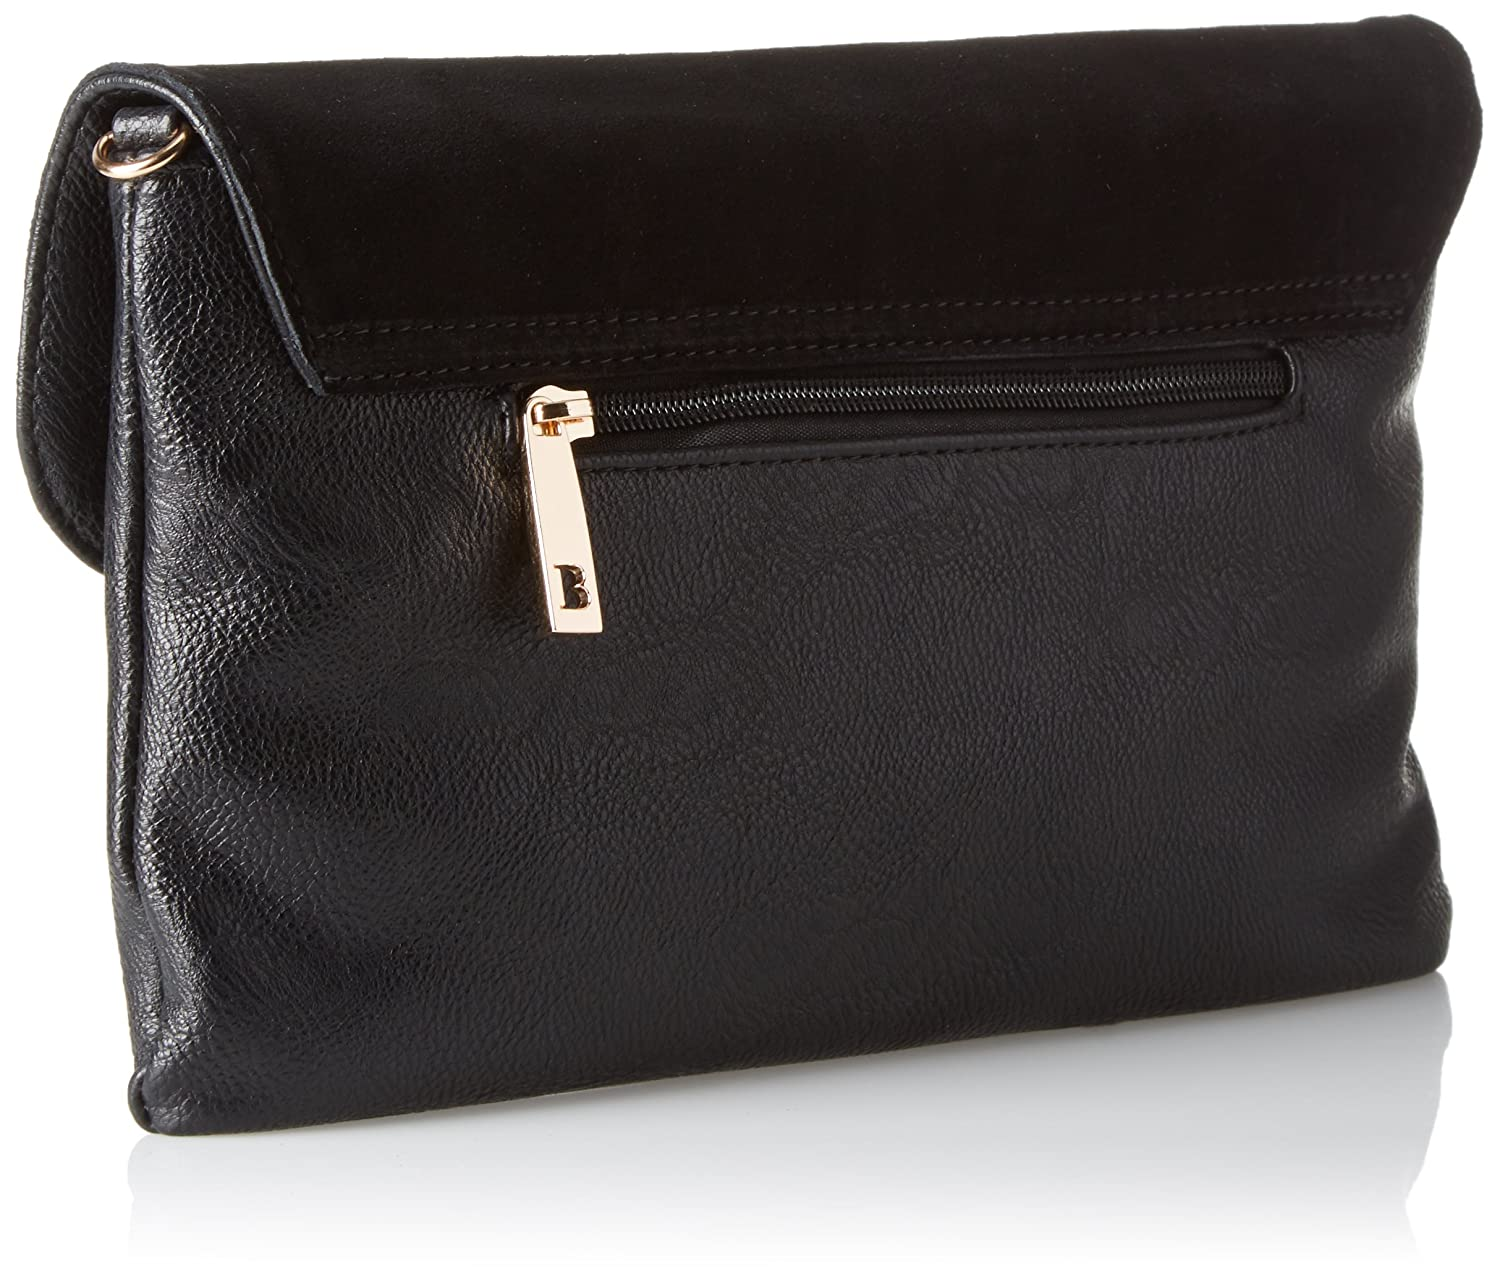 VIDA Statement Clutch - Brushed the Edges - SC by VIDA 21mDl006Q